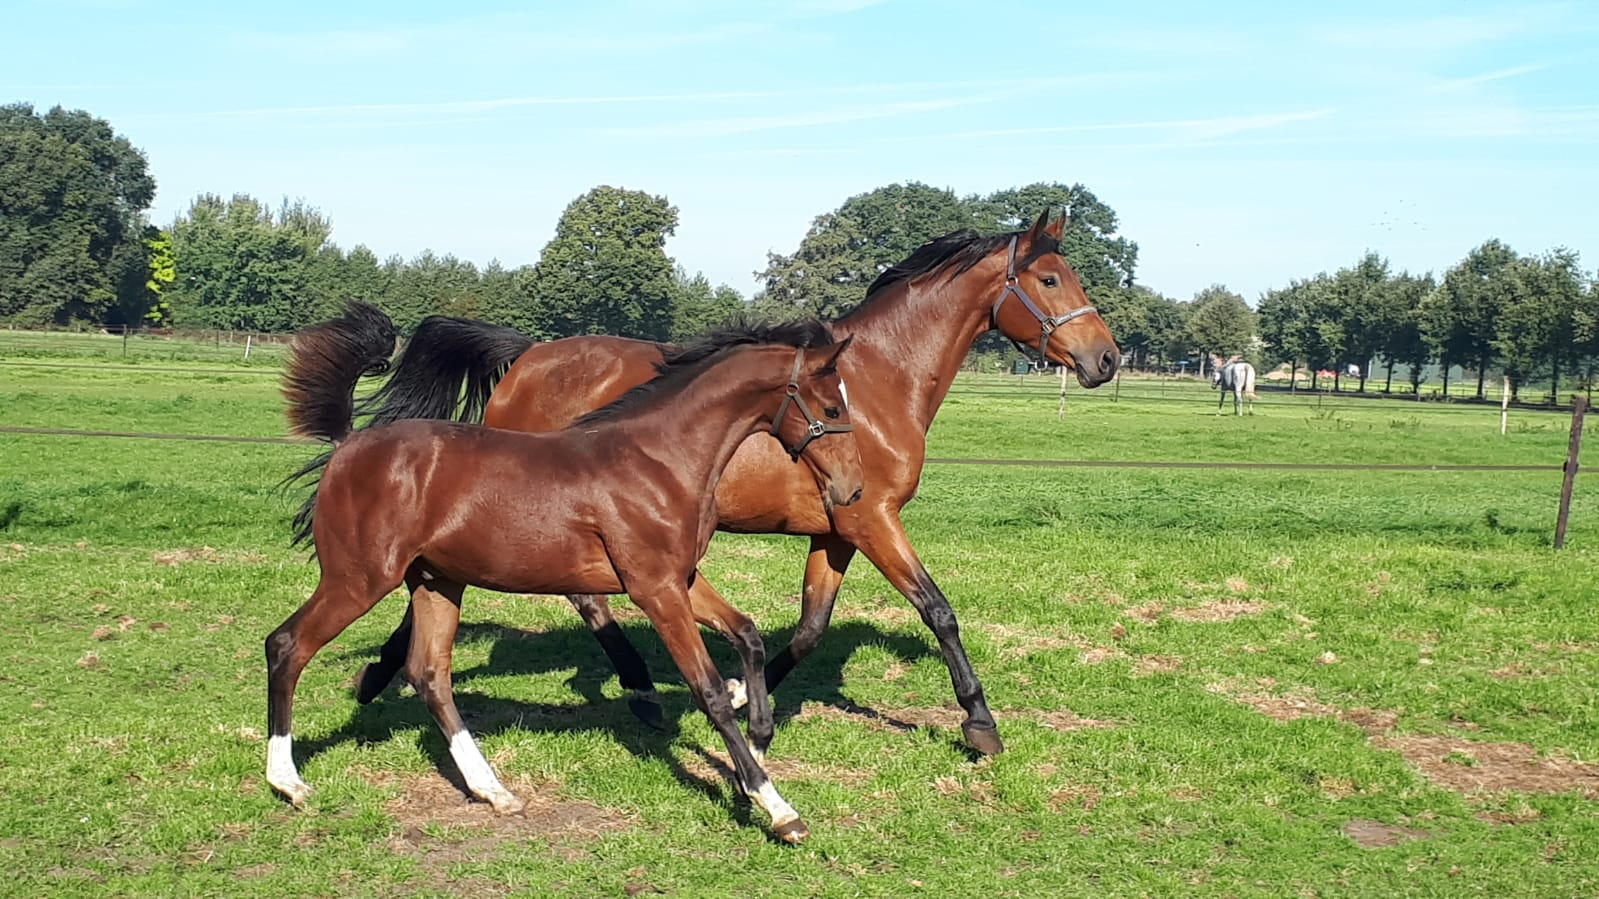 Napier AASJ with dam Inderella (Zirocco Blue x Caretino) 5 Oct 2018